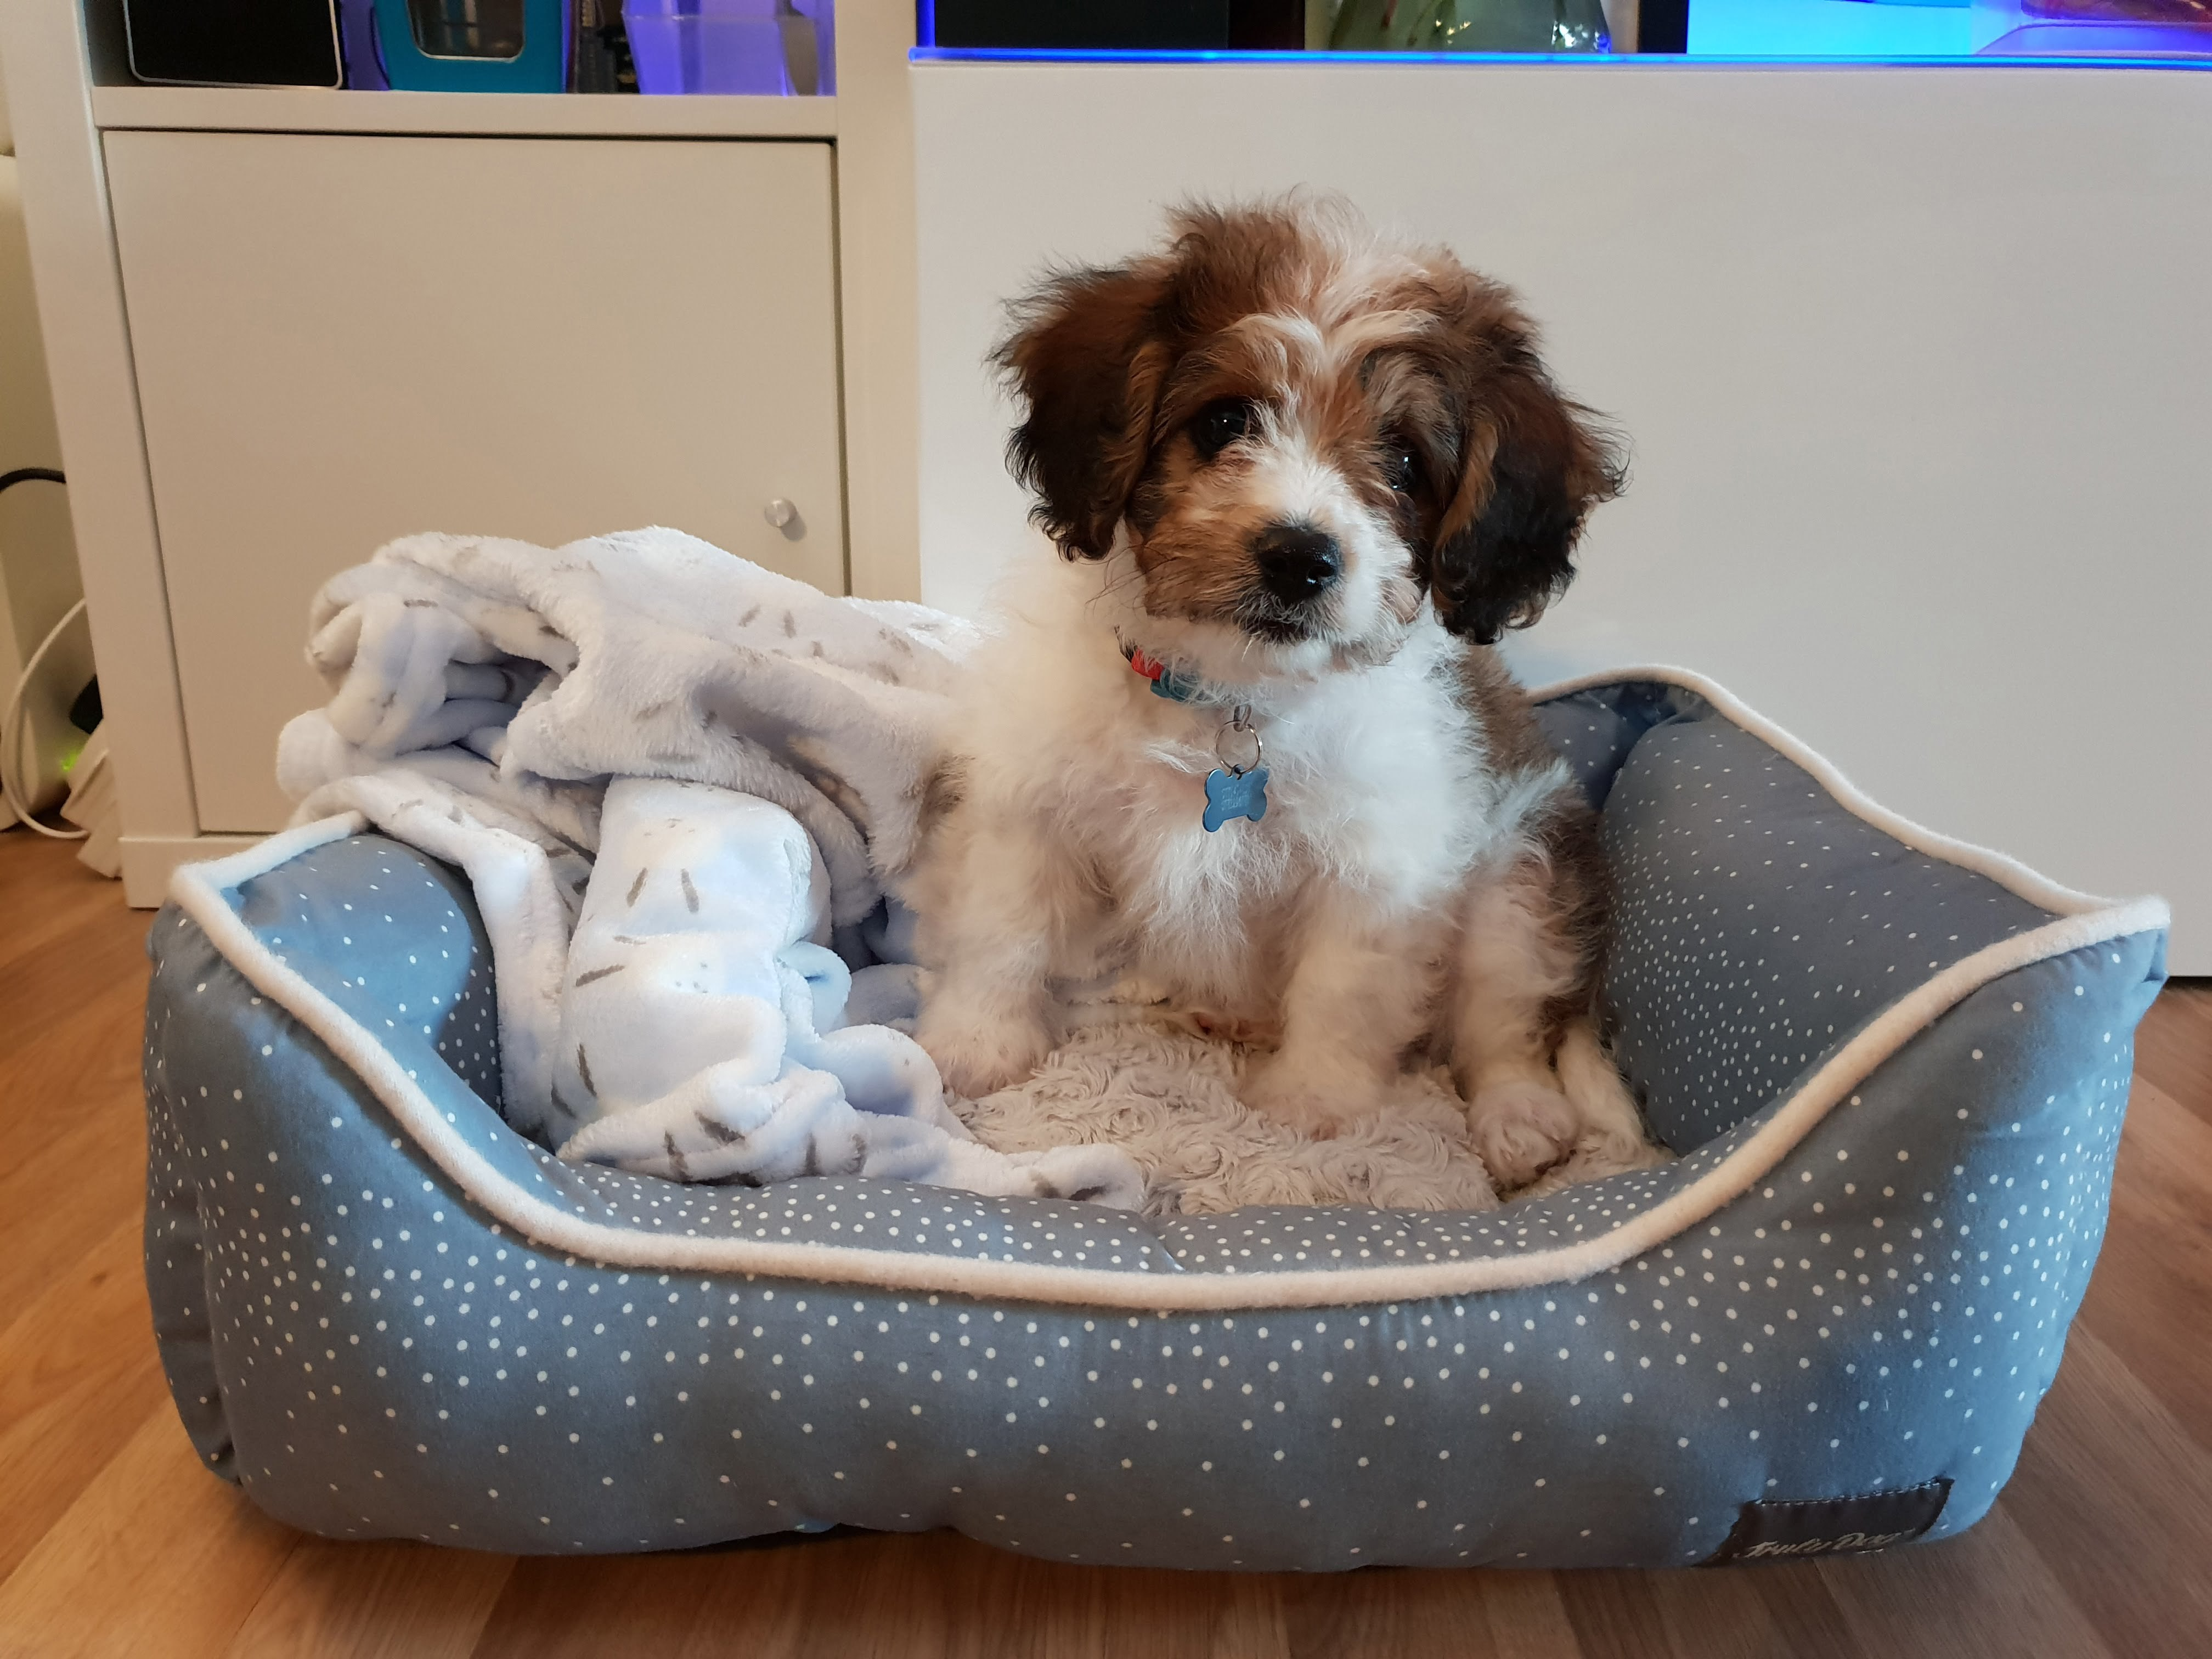 Duggee the Cavachon in his Bed